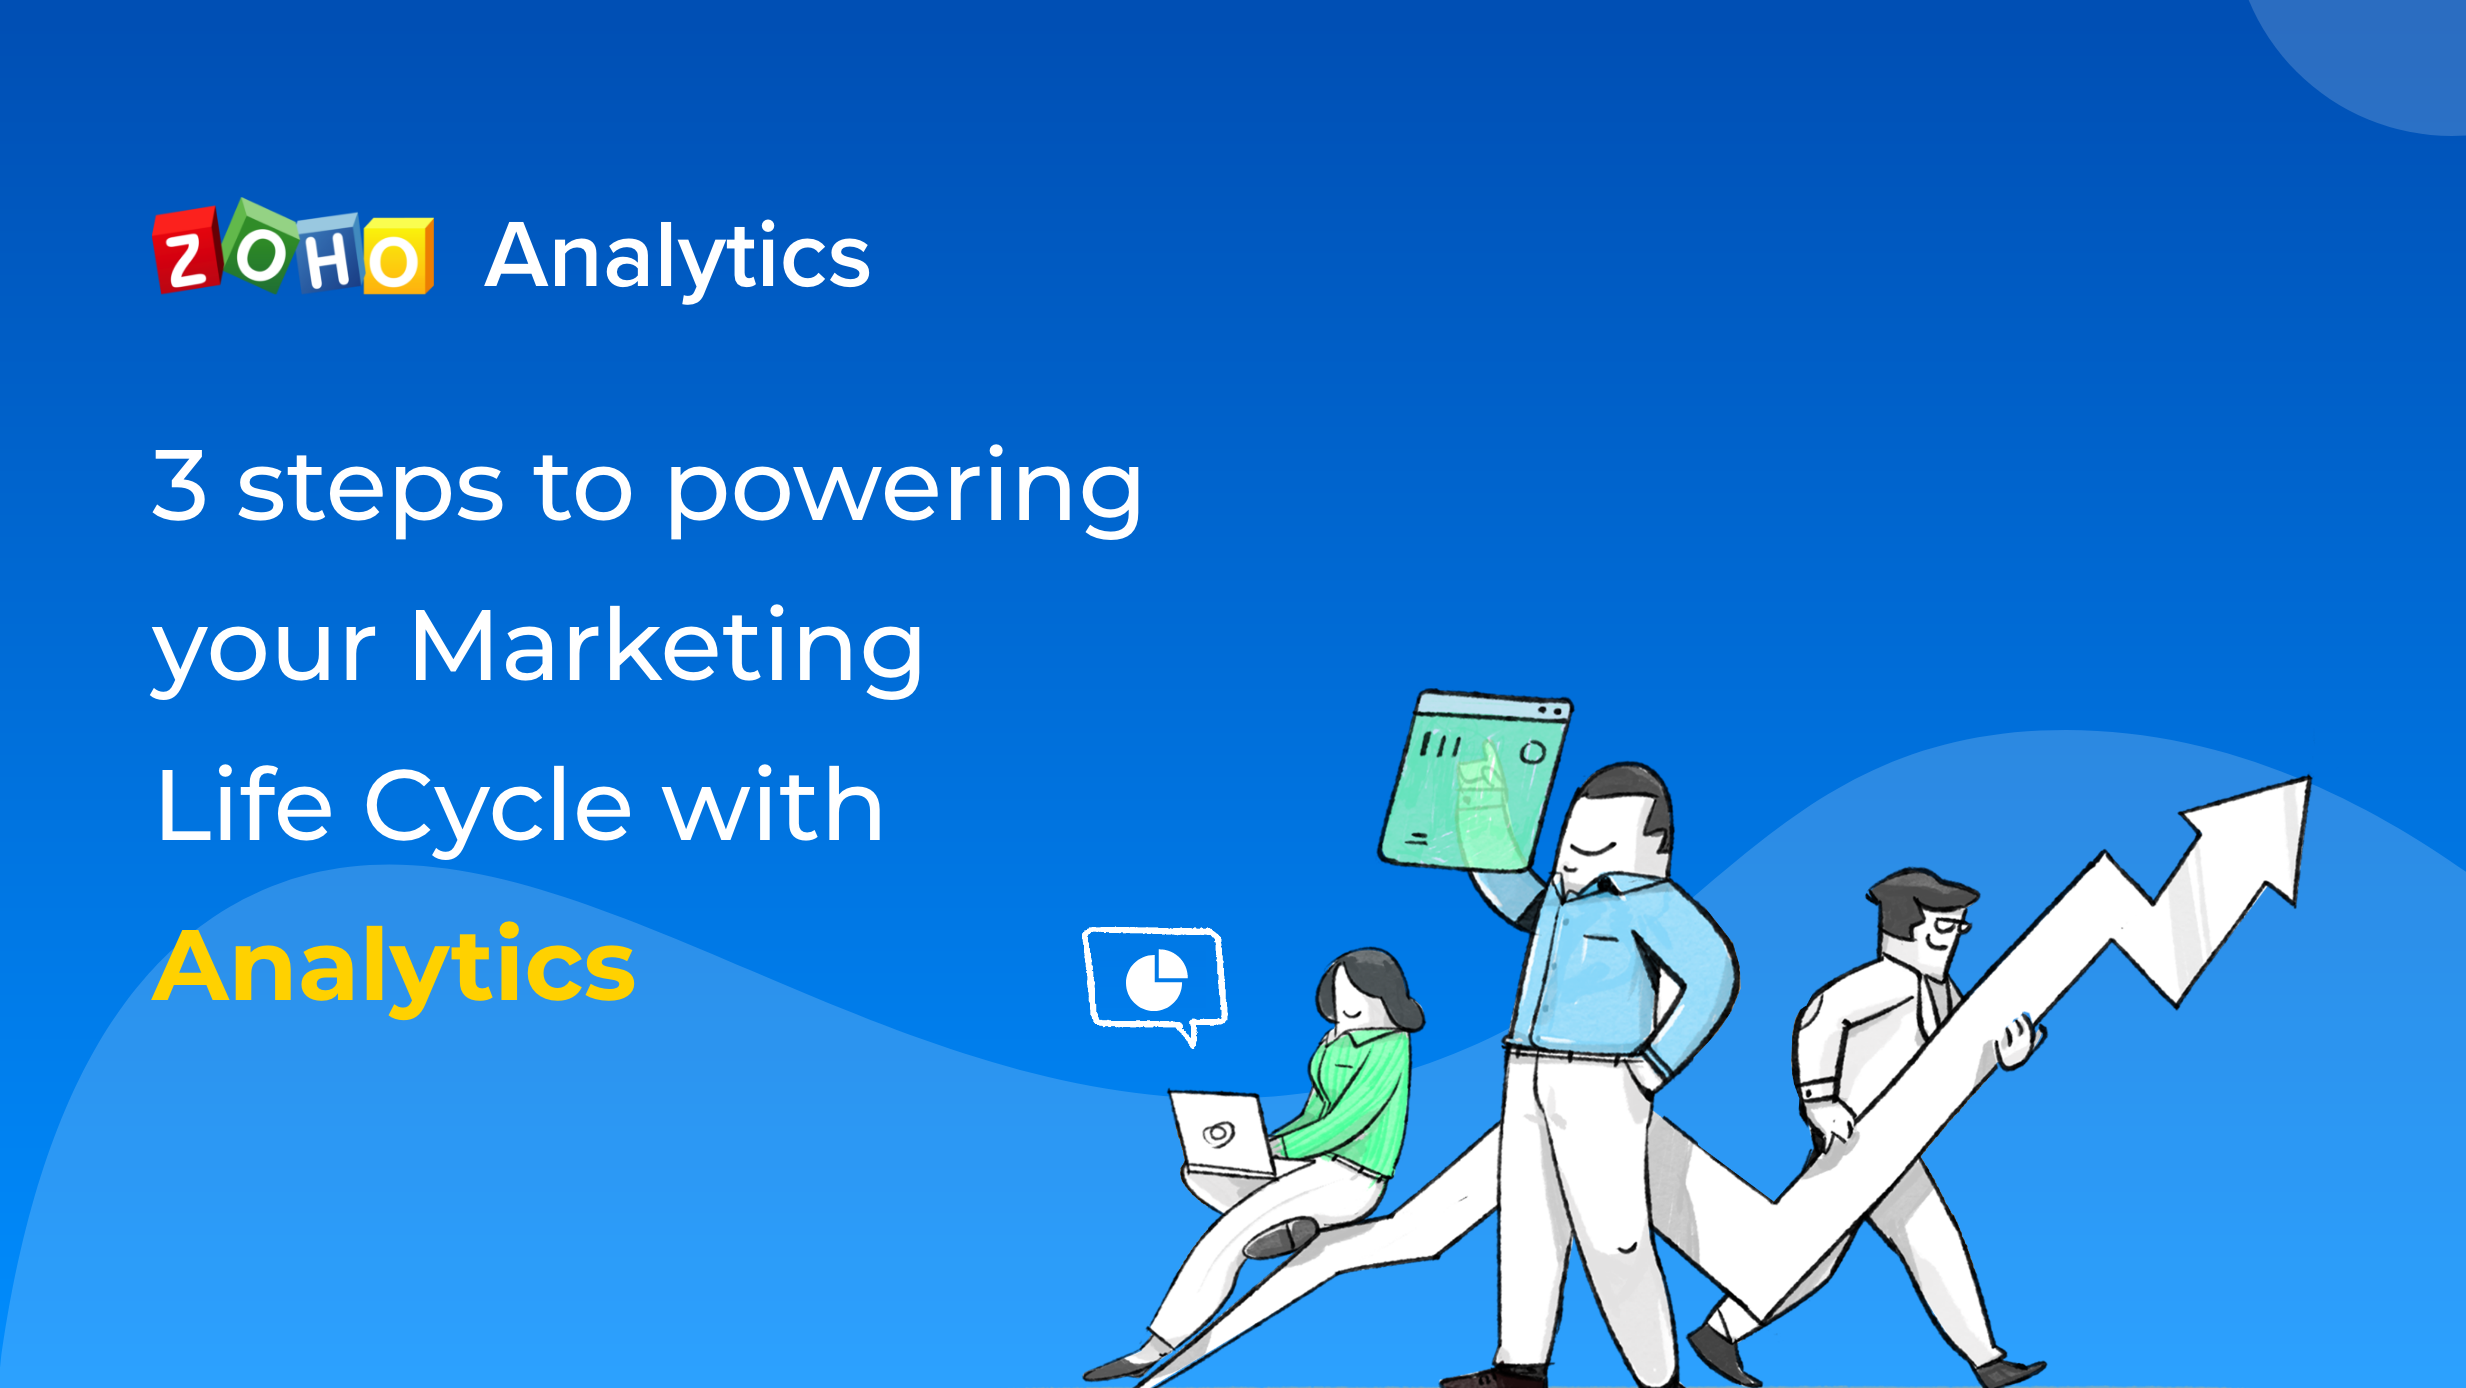 3 steps to powering your Marketing Life Cycle with Analytics